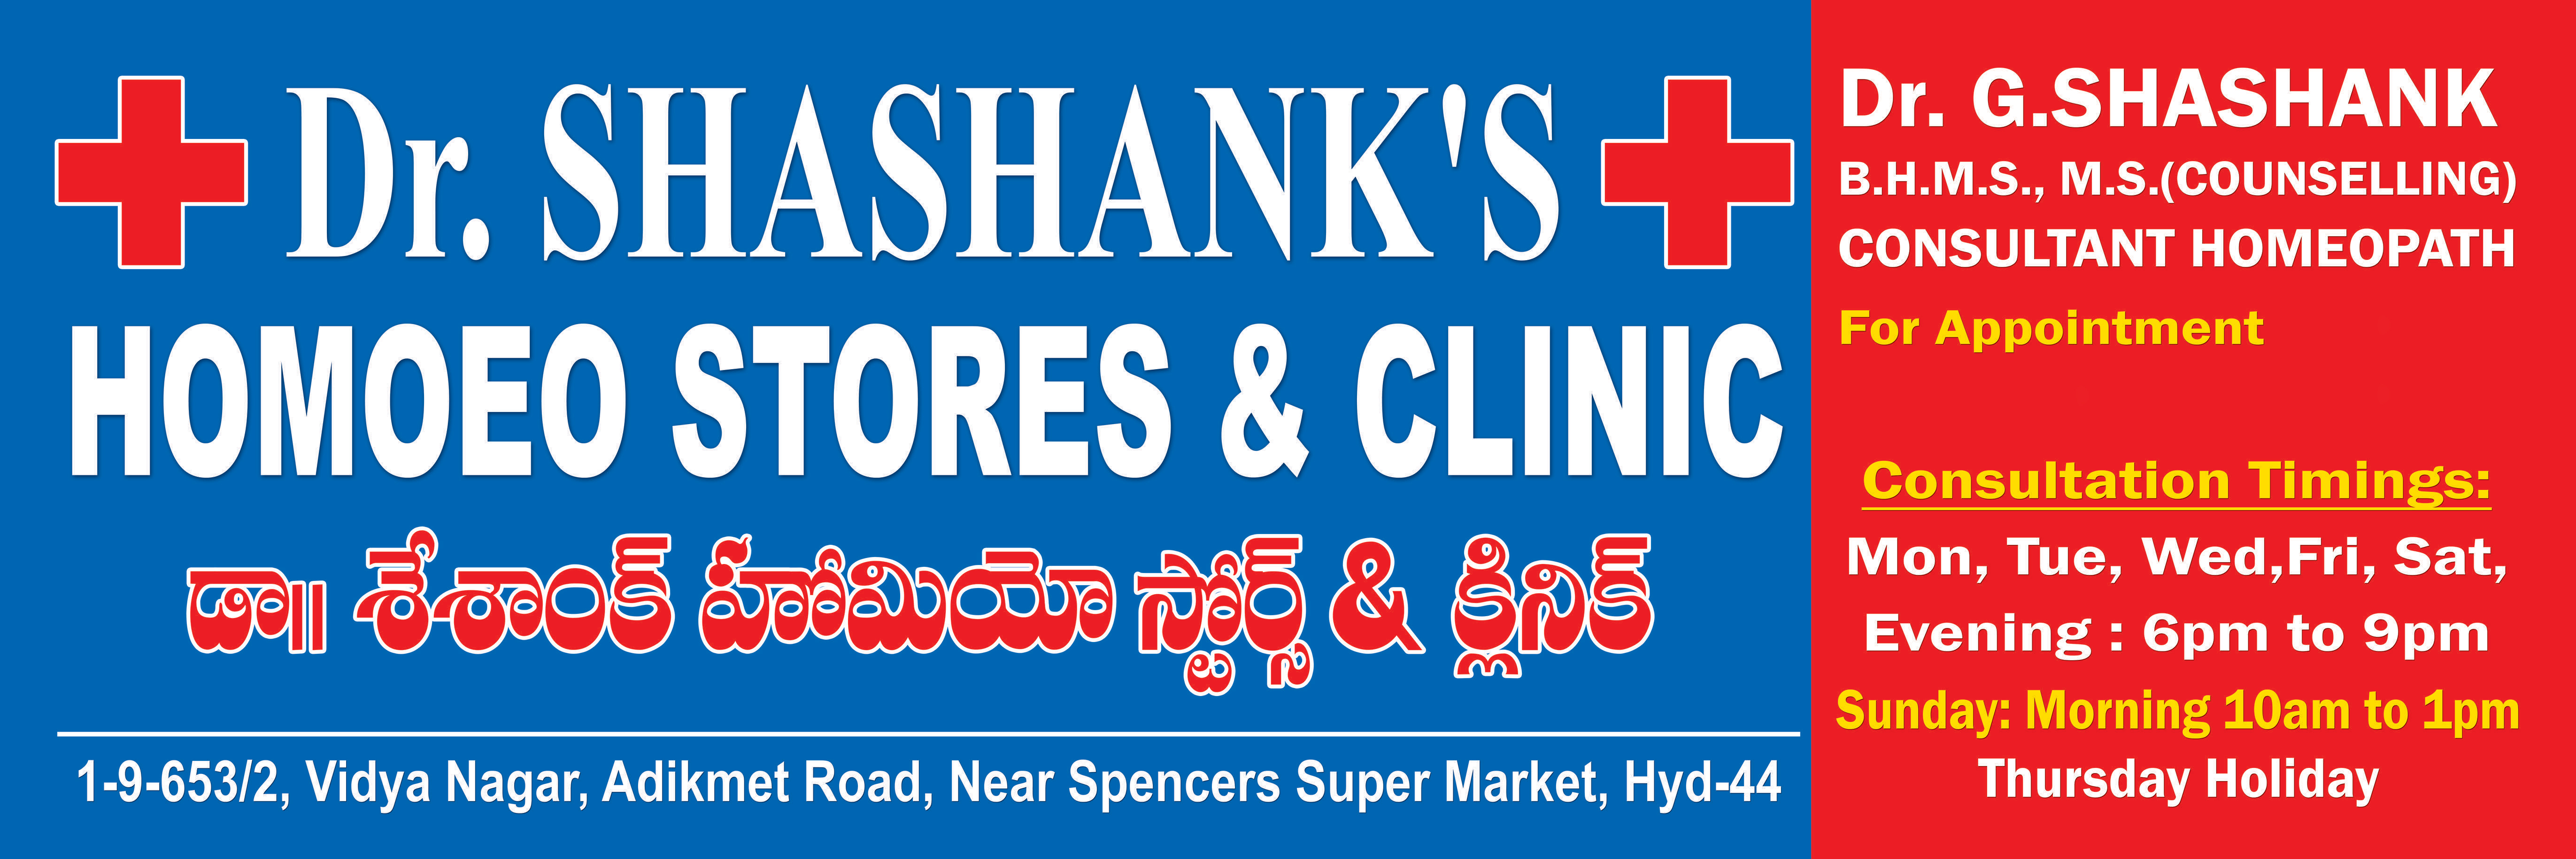 Dr. Shashank's Homeo Stores & Clinic